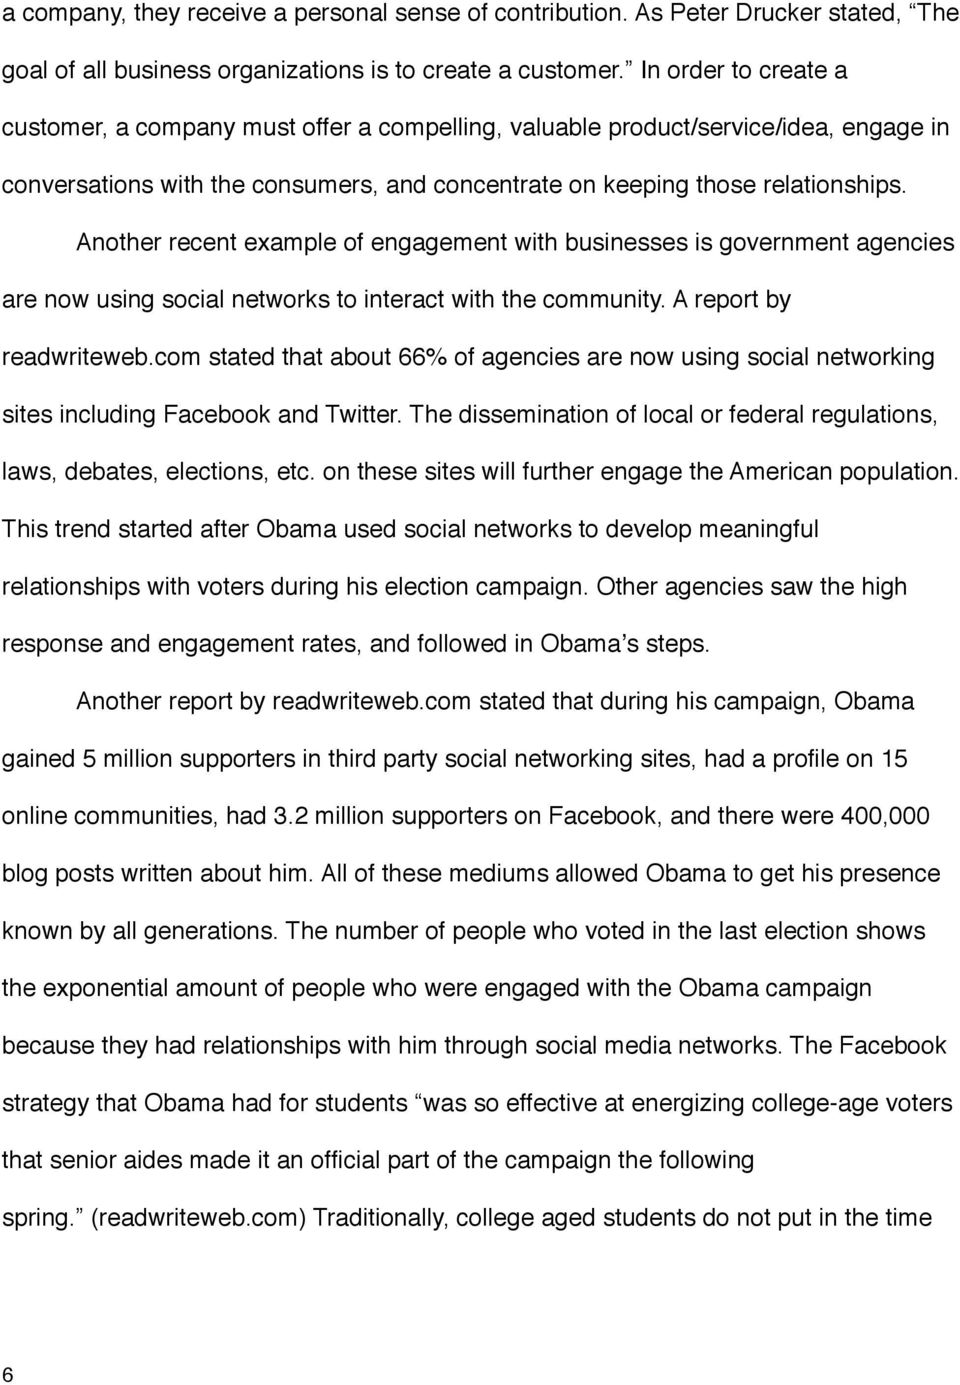 Another recent example of engagement with businesses is government agencies are now using social networks to interact with the community. A report by readwriteweb.